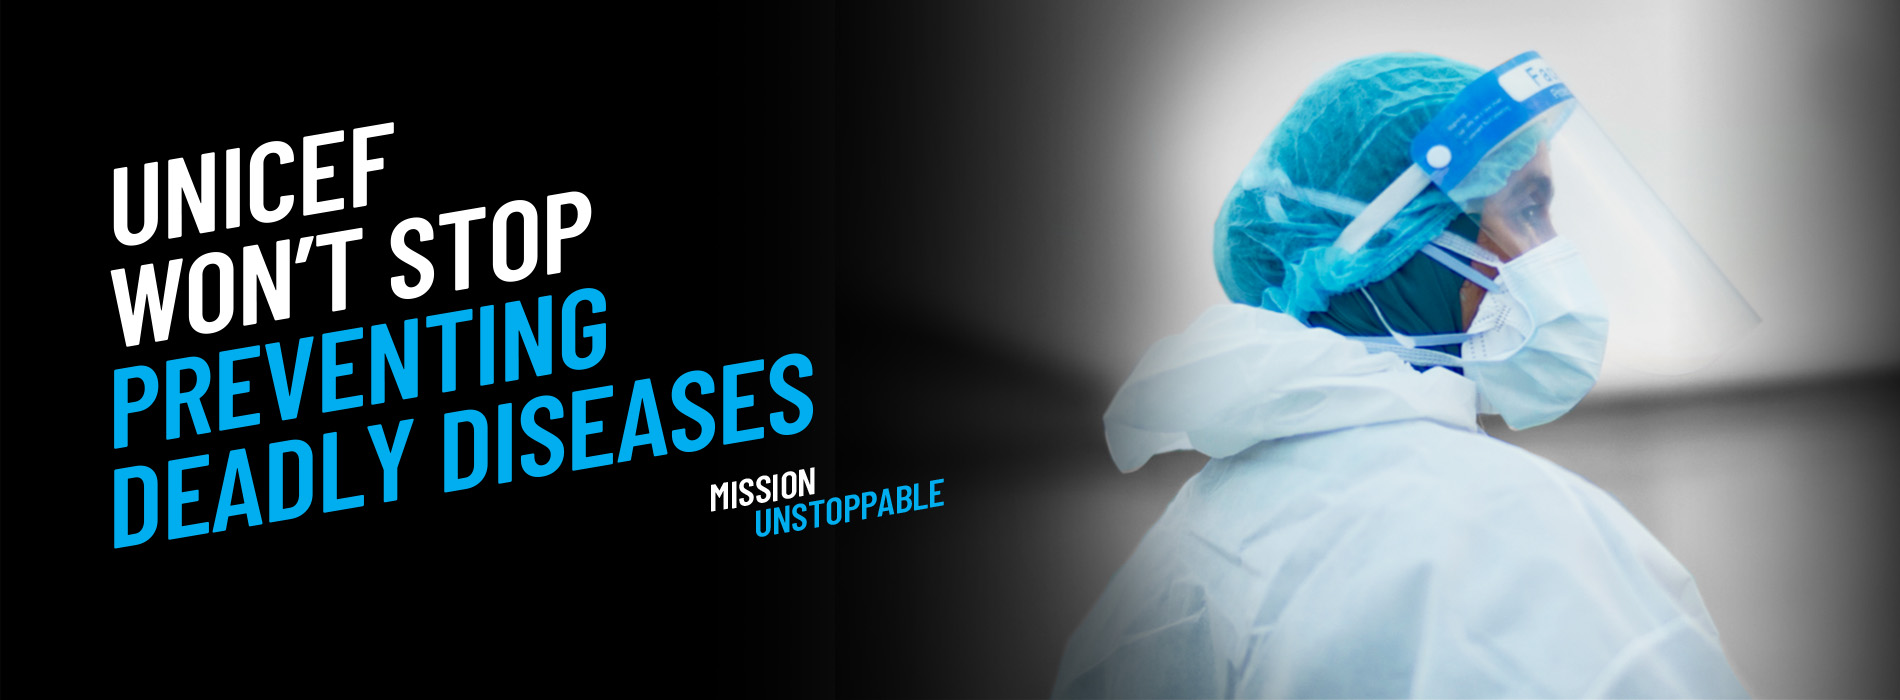 UNICEF won't stop preventing deadly diseases. Mission Unstoppable